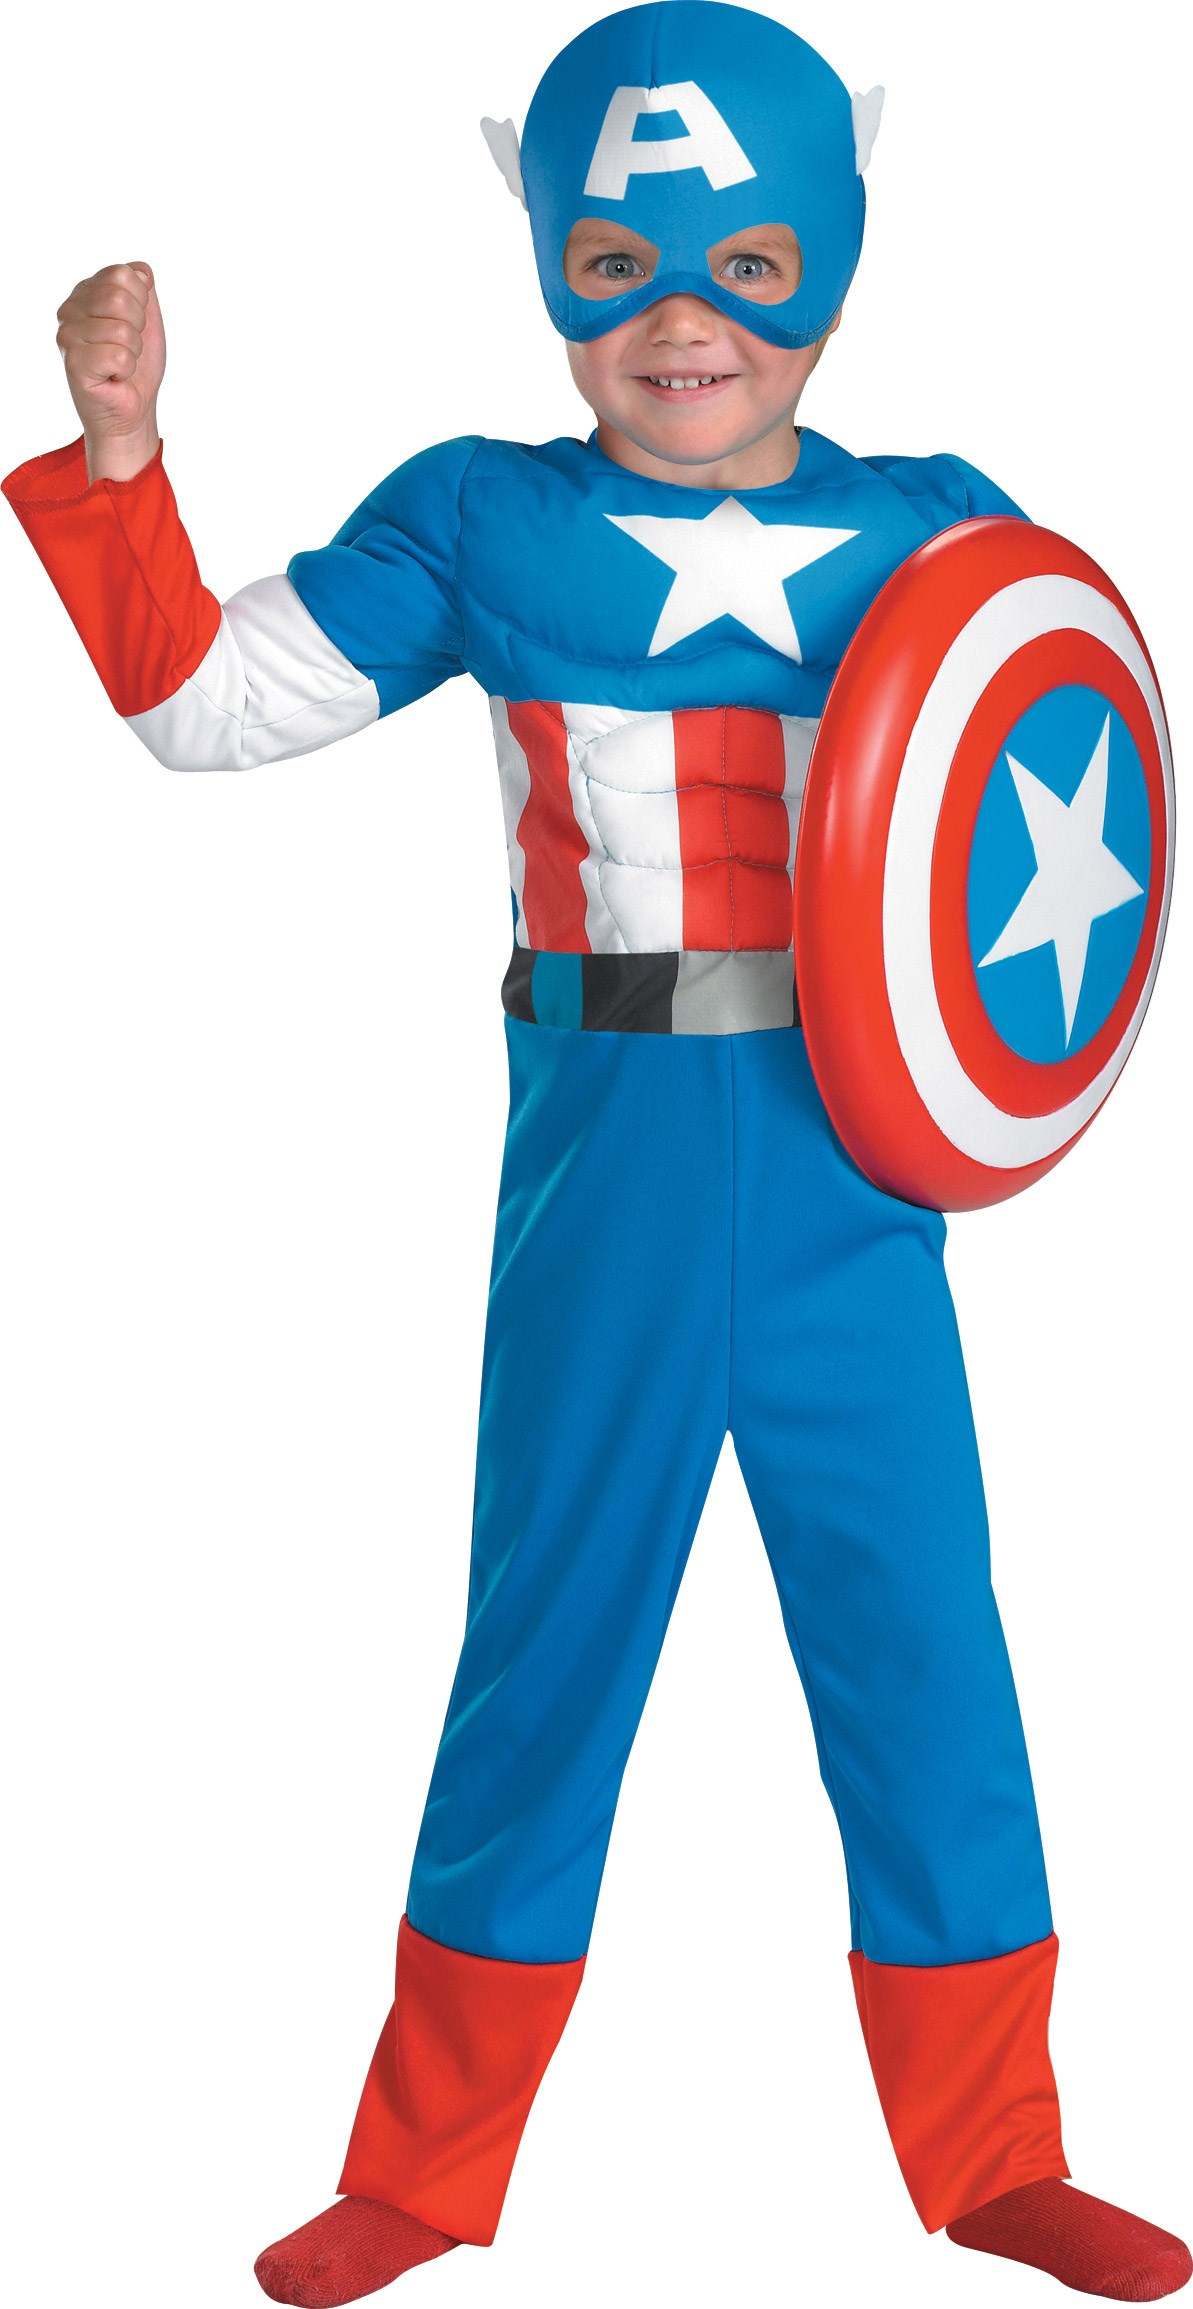 Captain America Muscle Toddler Costume Toddler (3T-4T)